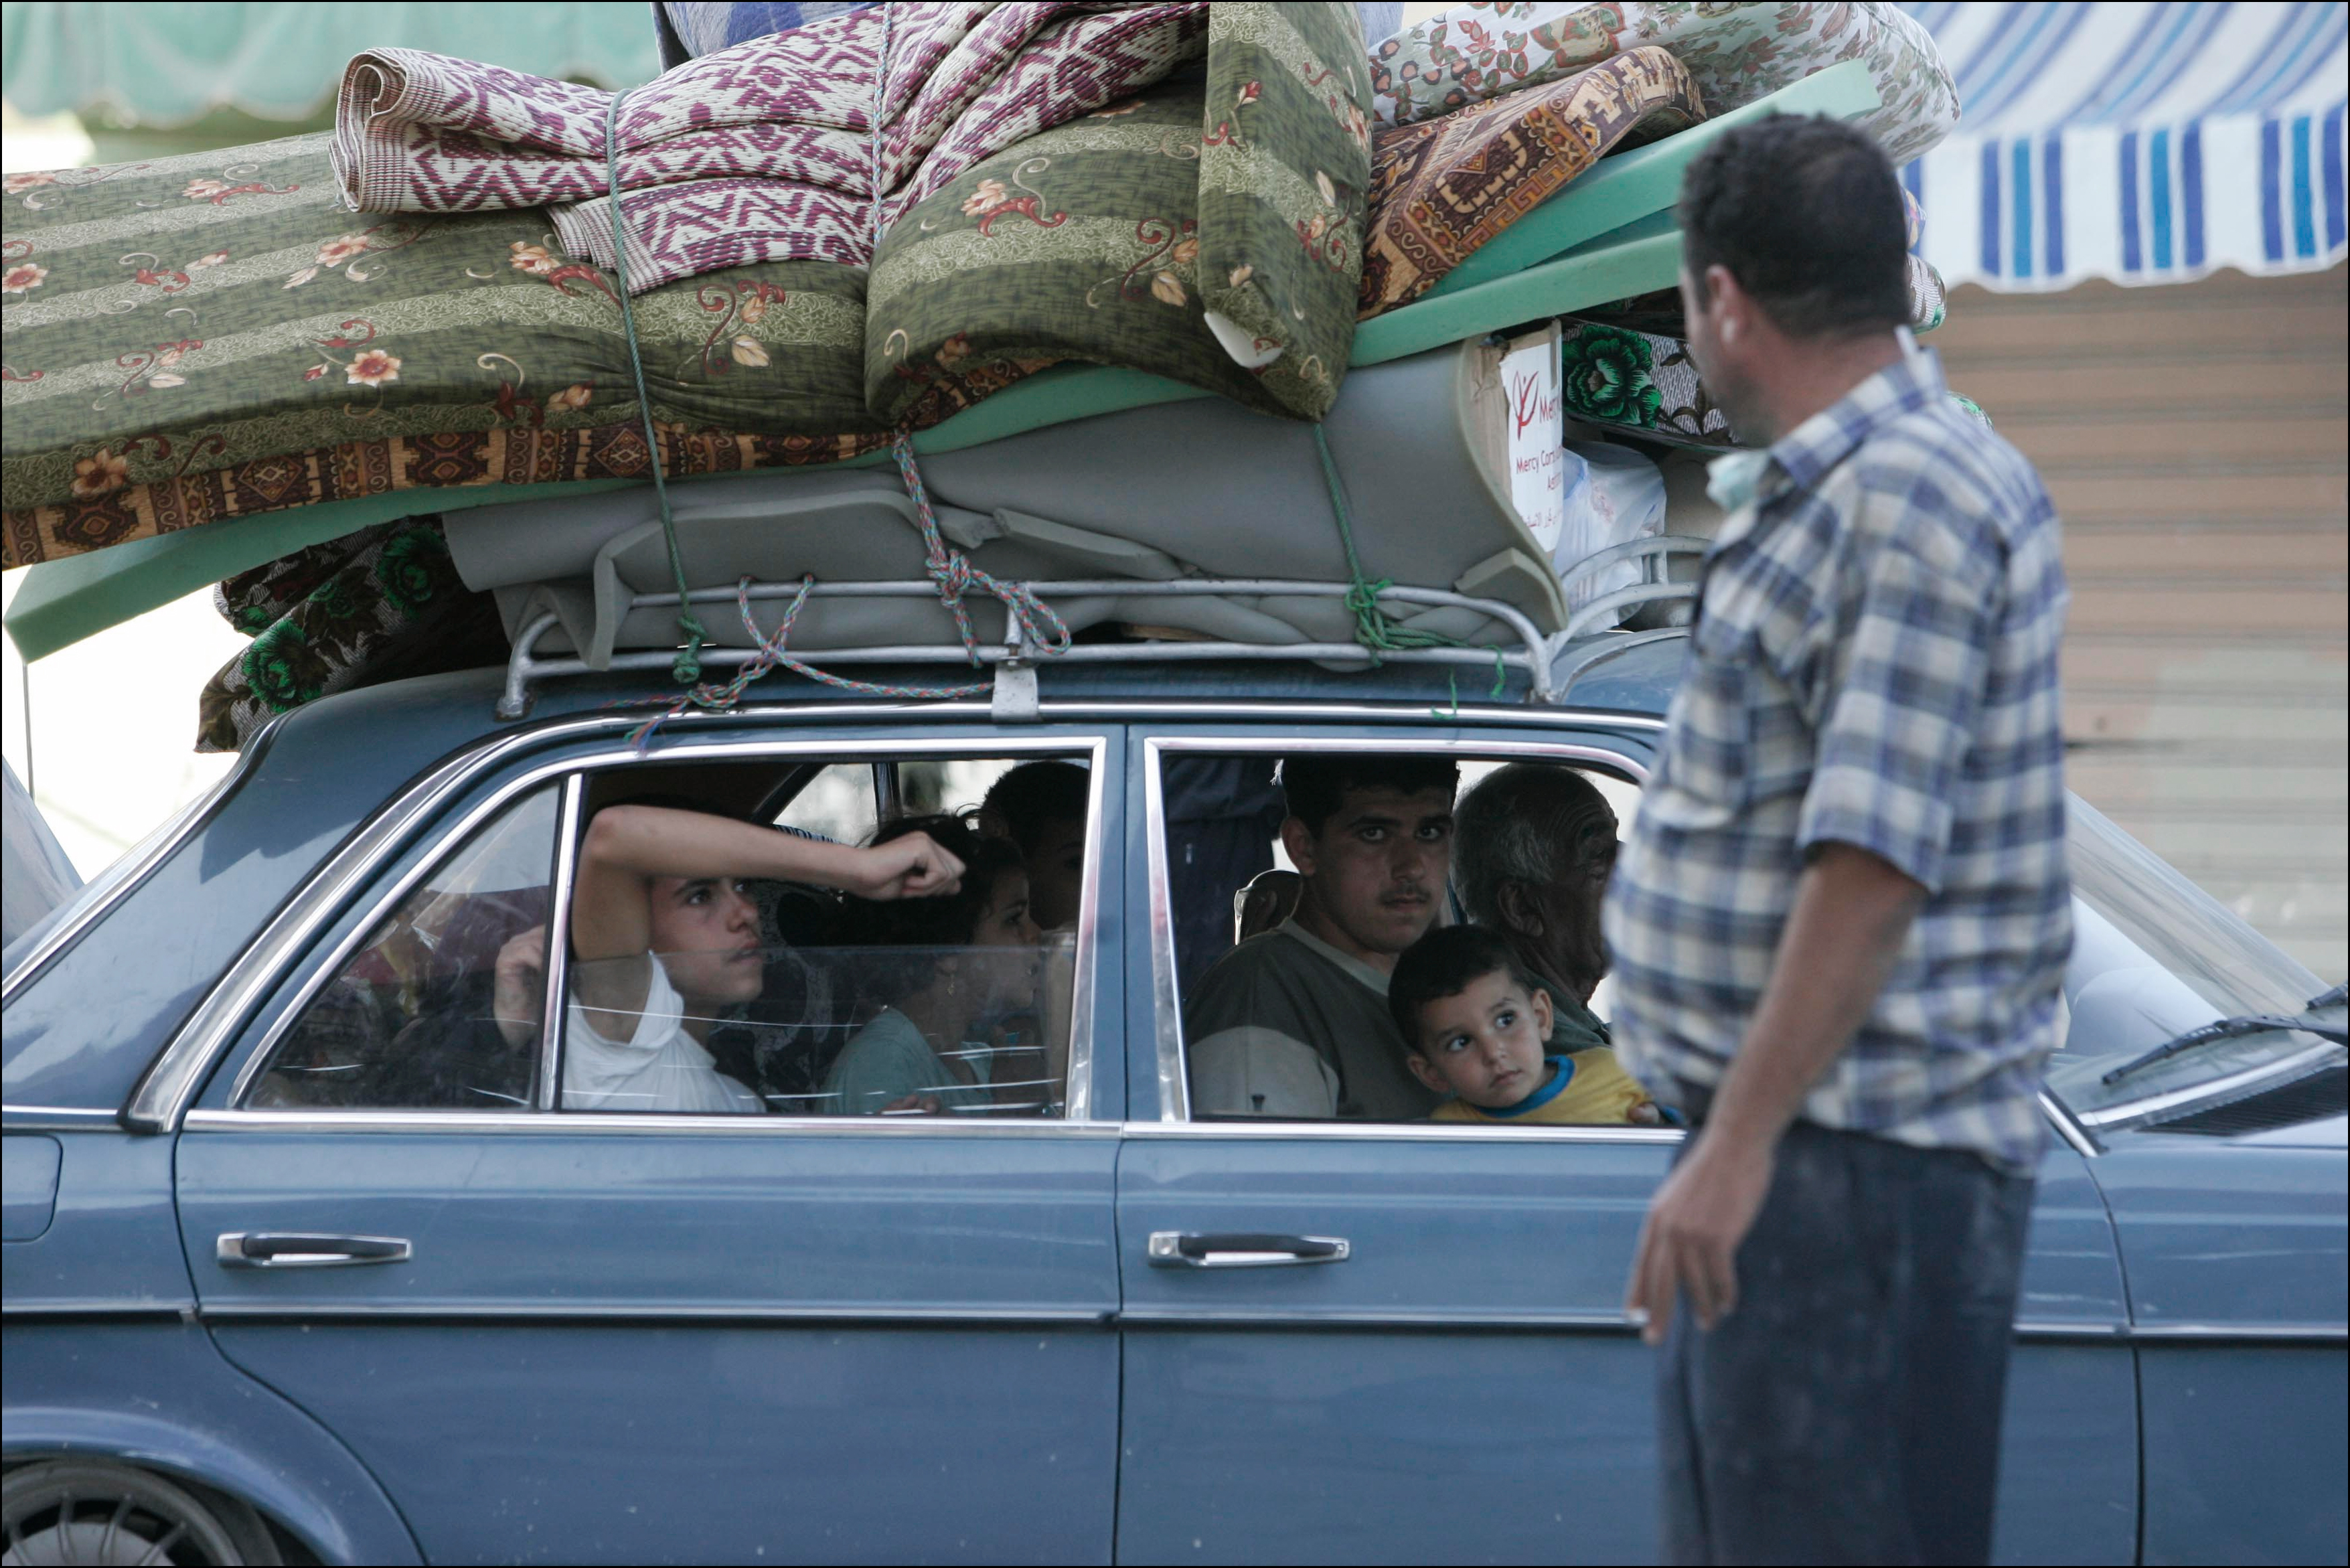 Lebanese refugees drive back to their home towns in southern Lebanon after a ceasefire agreement stopped the fighting. Many Lebanese celebrated what they perceived as the win of Hizbollah after a month long war with Israel. The war lead to over 1000 civilian deaths in Lebanon and vast destruction of the country's infrastructure from heavy Israeli bombardments.